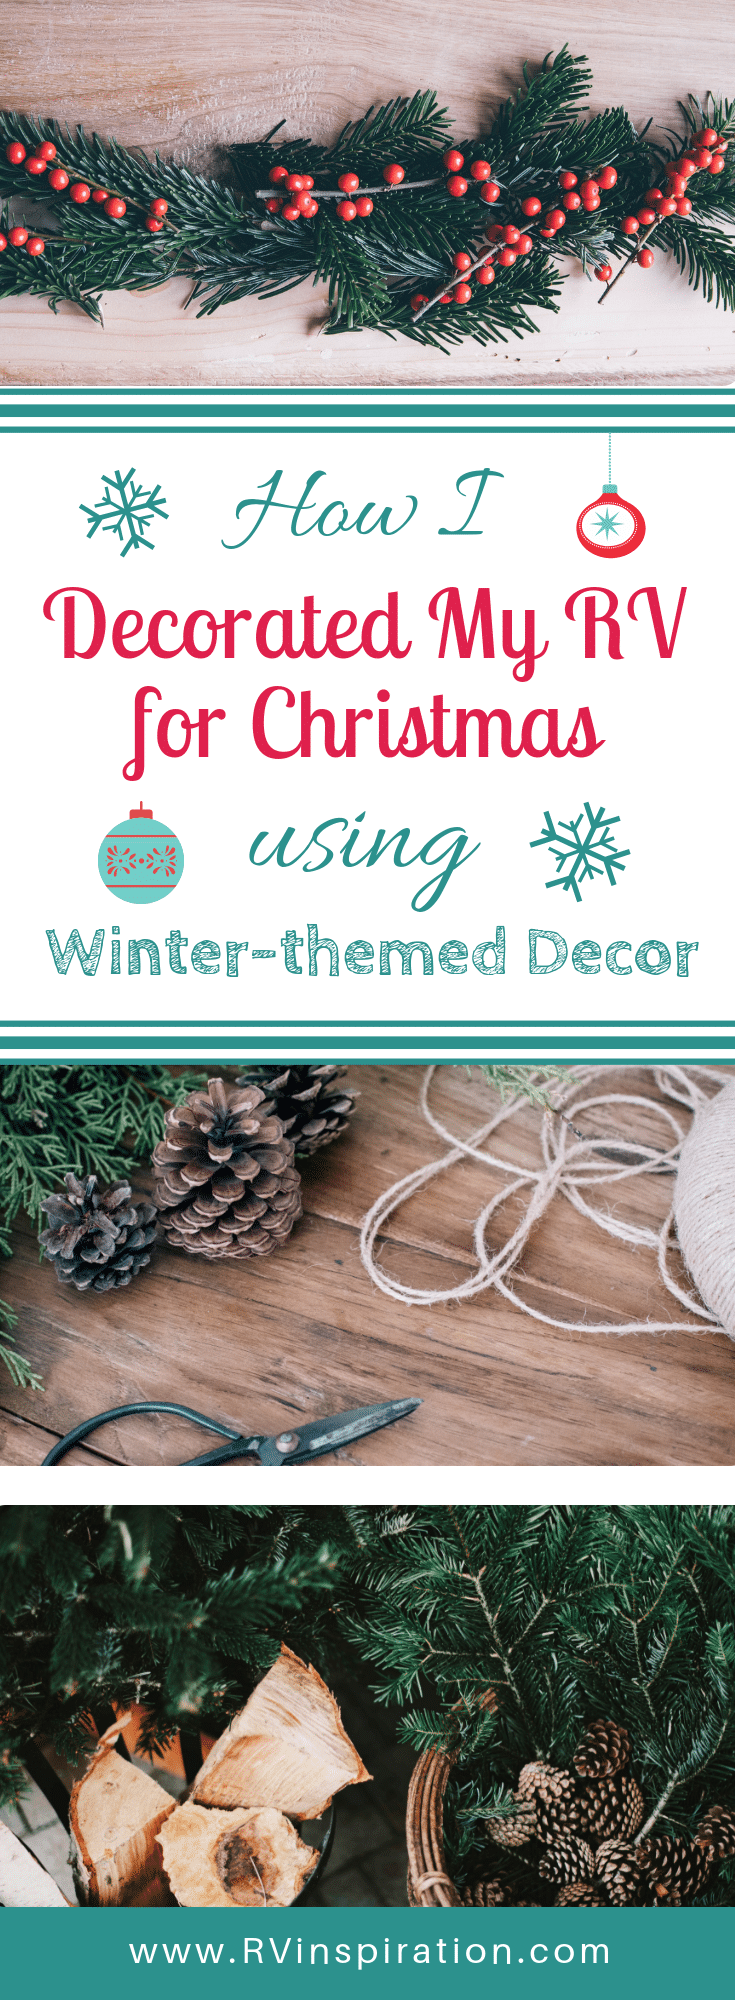 If you're camping or living in a travel trailer or motorhome this Christmas season, here are some ideas for decor that won't take up too much storage space in your RV.